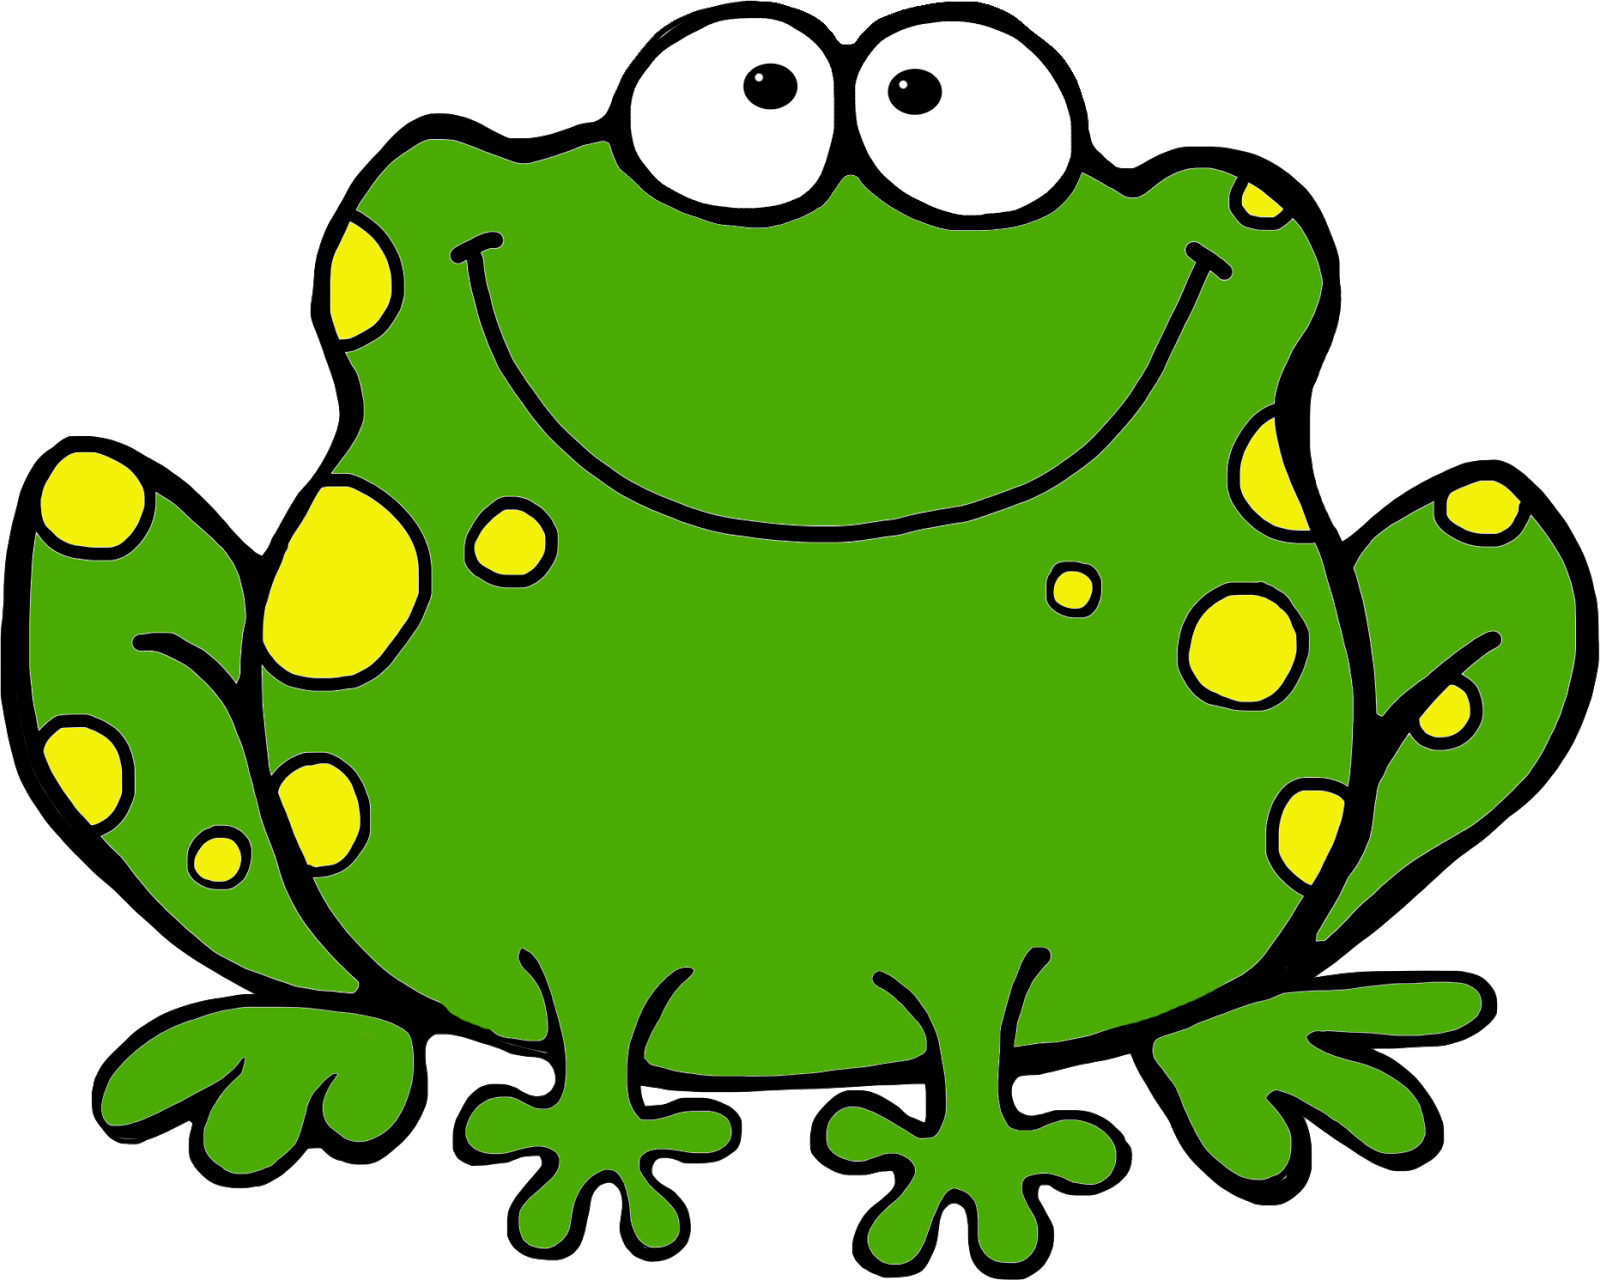 frog-pictures-for-kids-best